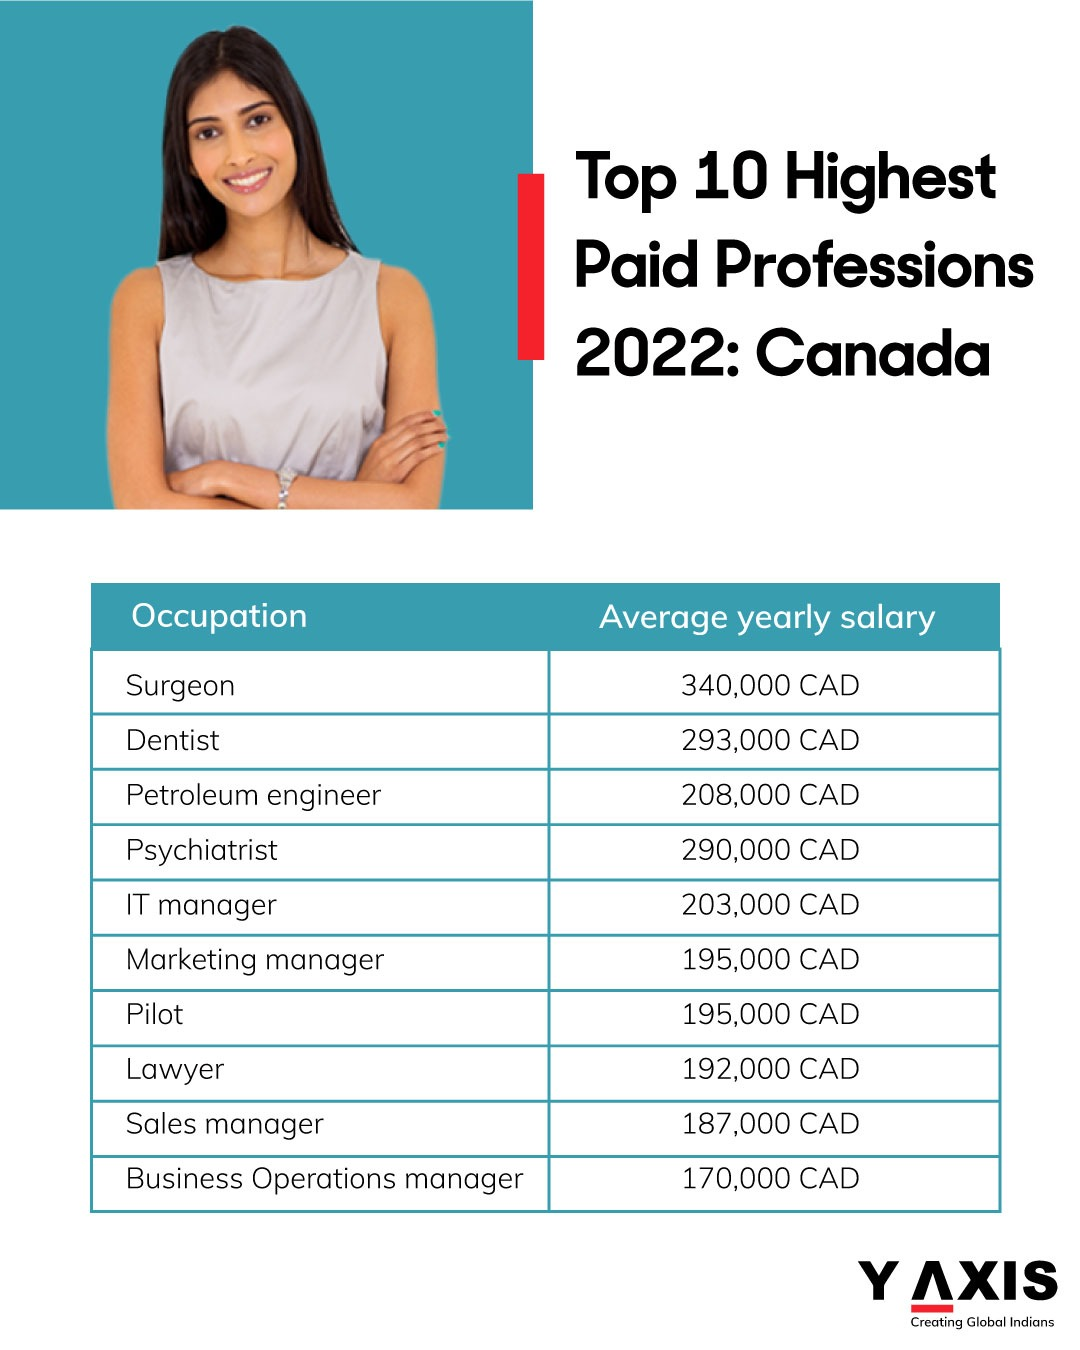 Top-10-Highest-Paid-Professions 2022 Canada